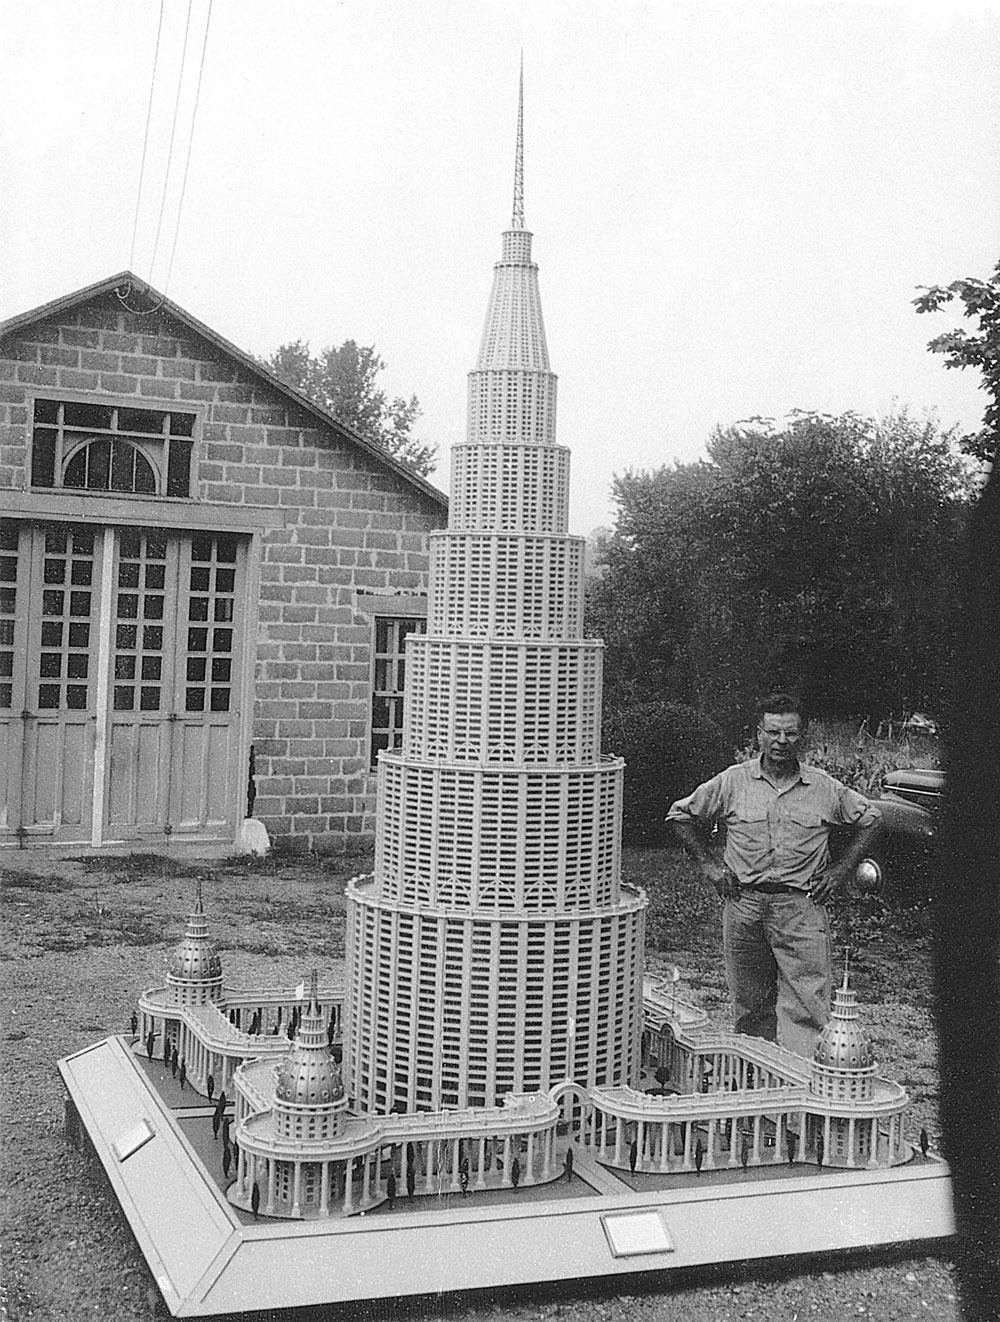 Marino Auriti 2002.35.1in_situ.jpg Marino Auriti with the Encyclopedic Palace of the World Photographer unidentified, c. 1950s Collection American Folk Art Museum, New York